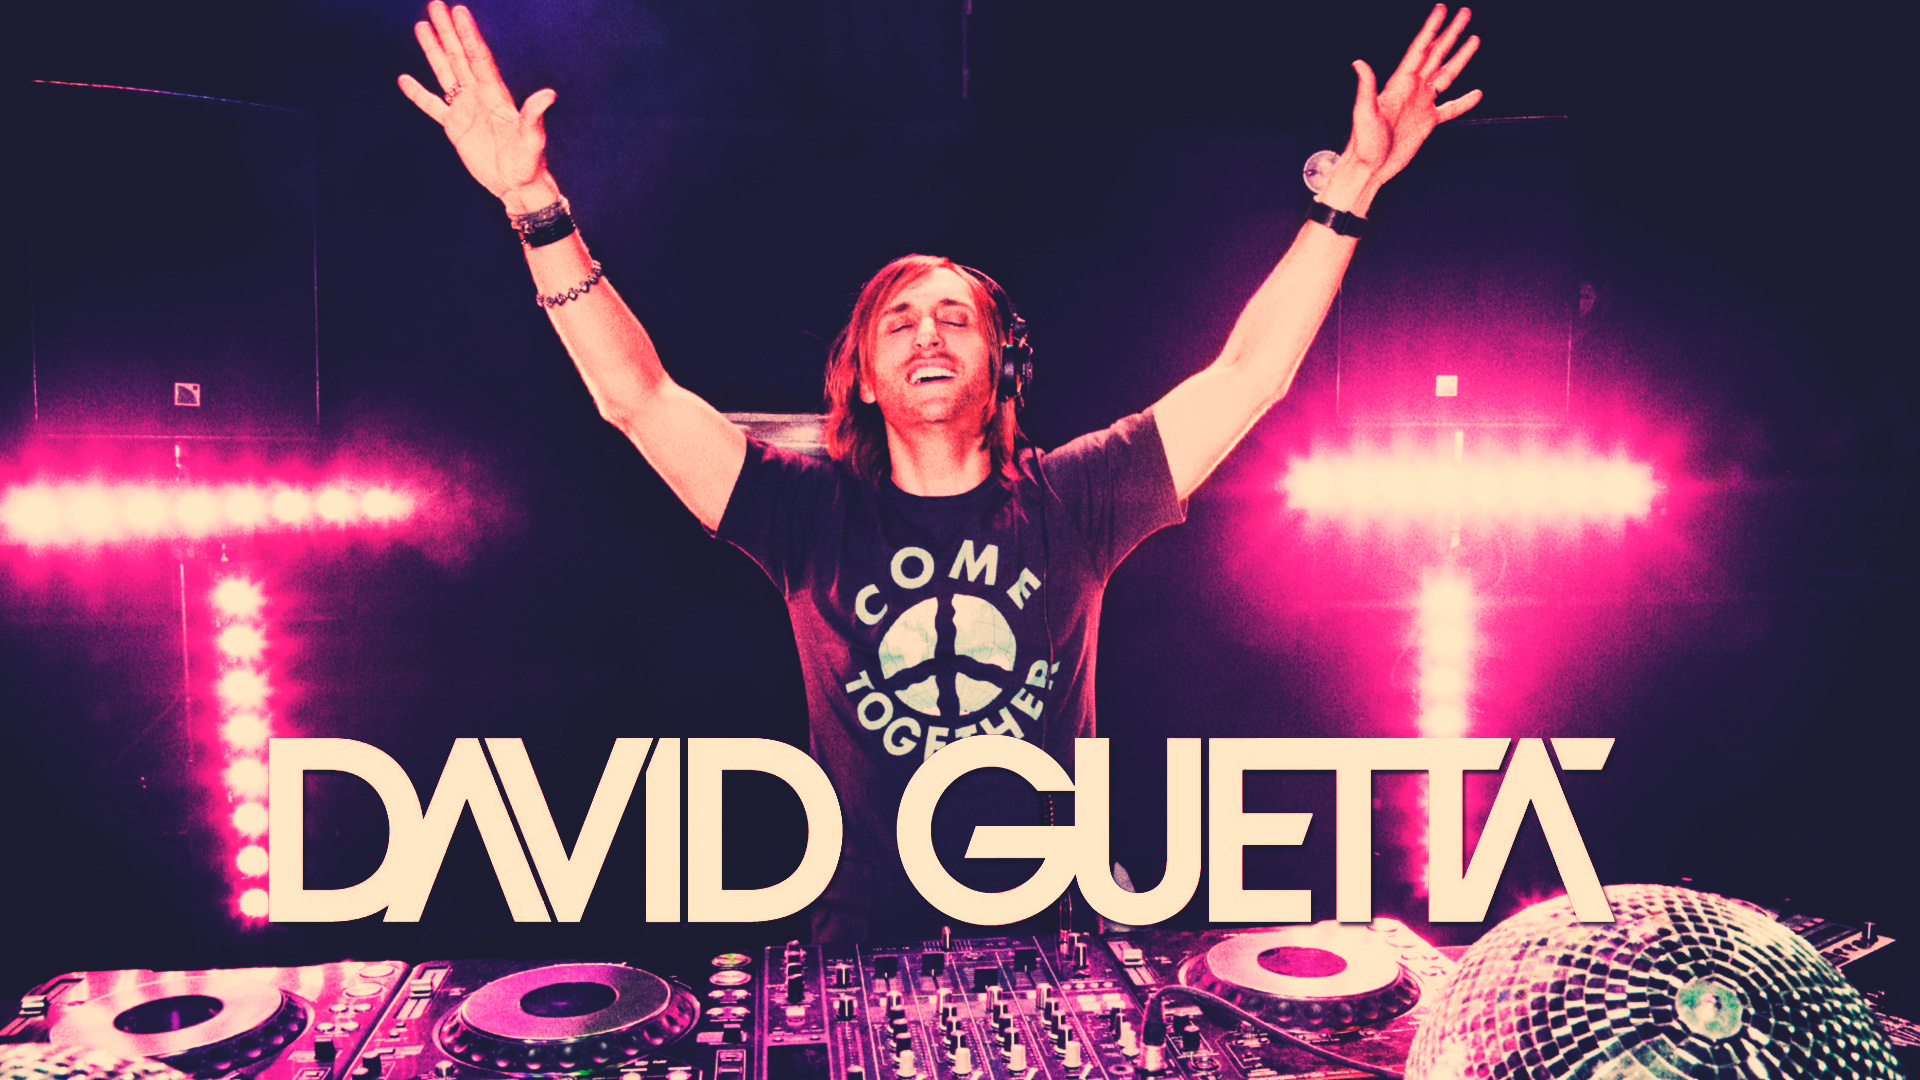 David Guetta Wallpapers Images Photos Pictures Backgrounds